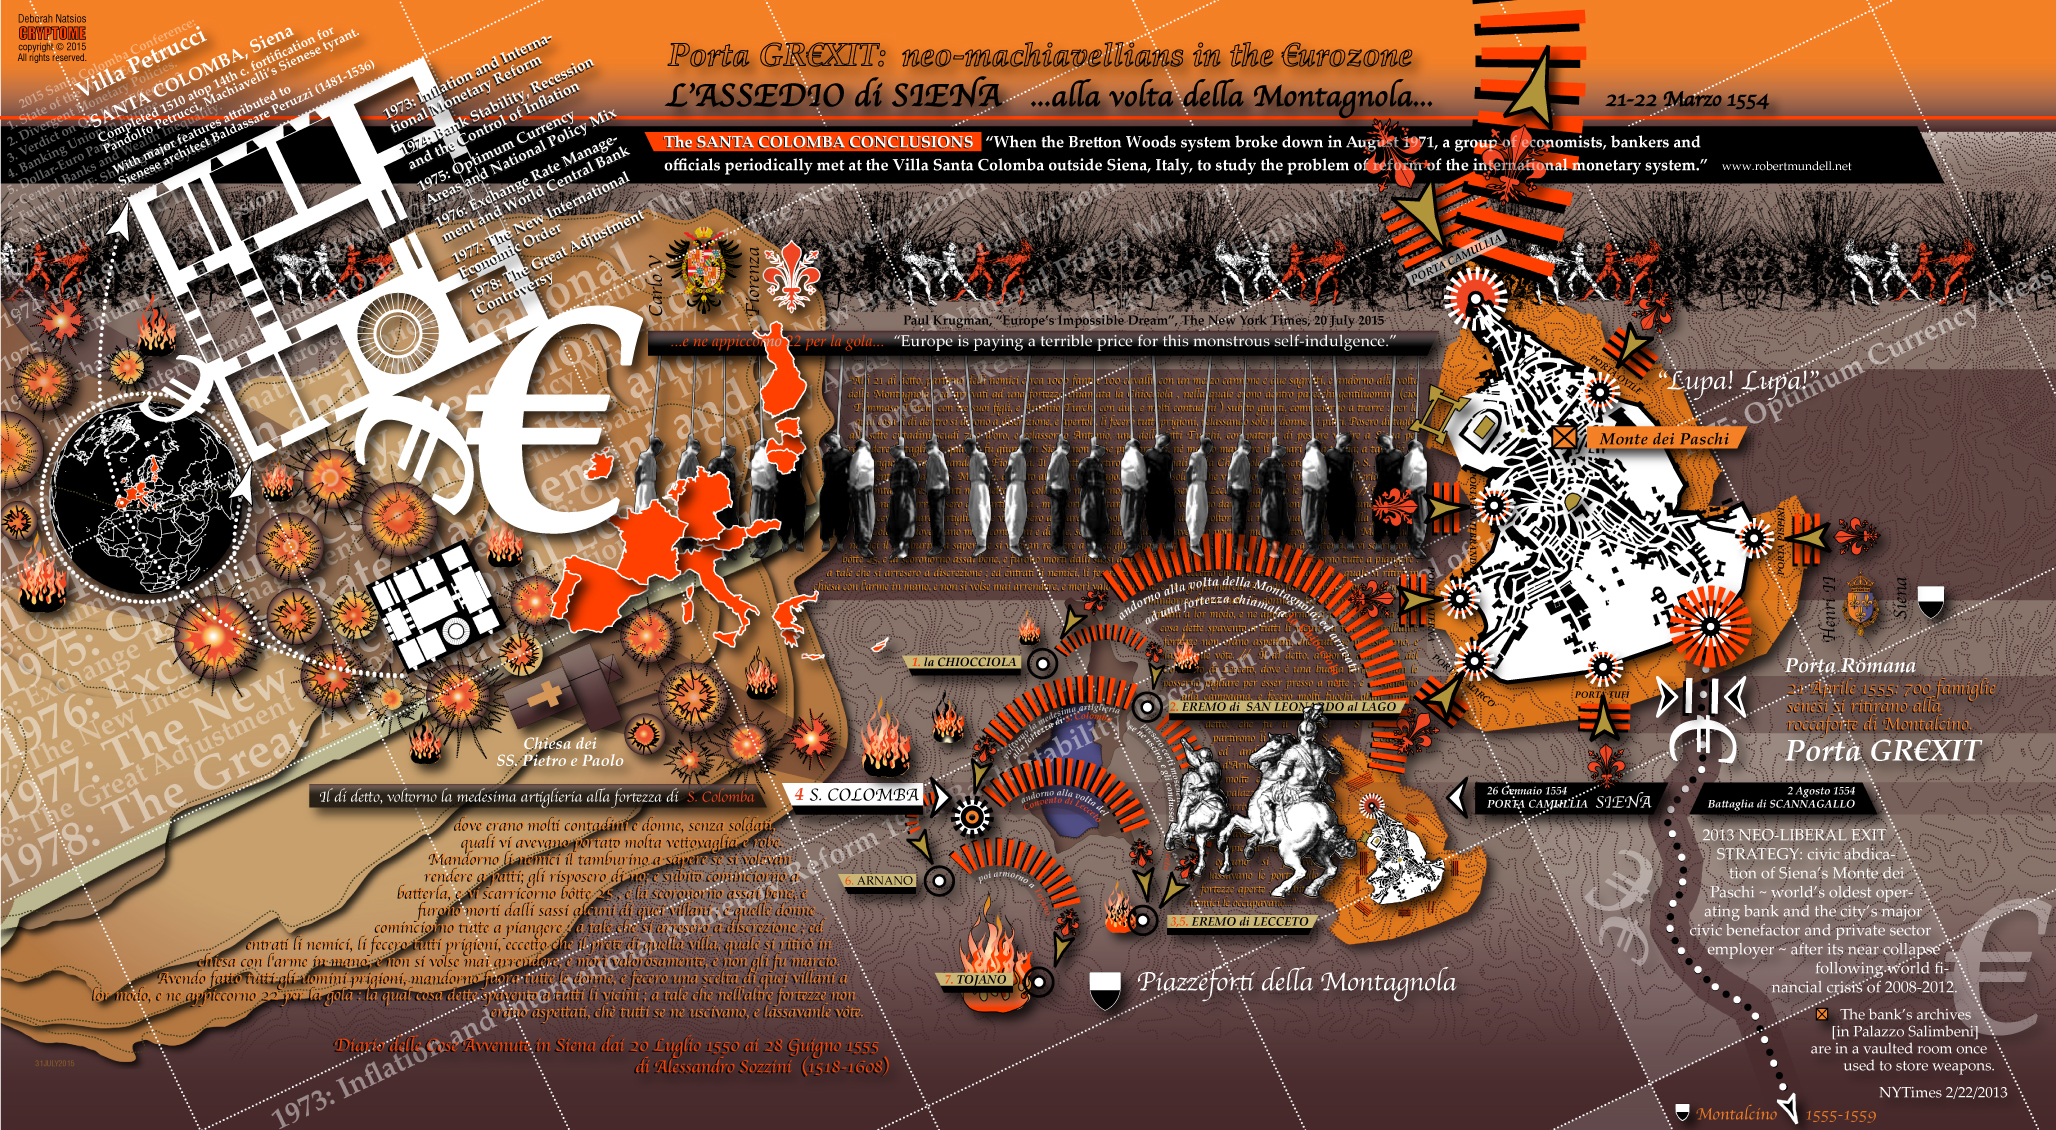 Cryptome 2016 1996 grxit neo machiavellians in the eurozone april 13 fandeluxe Choice Image